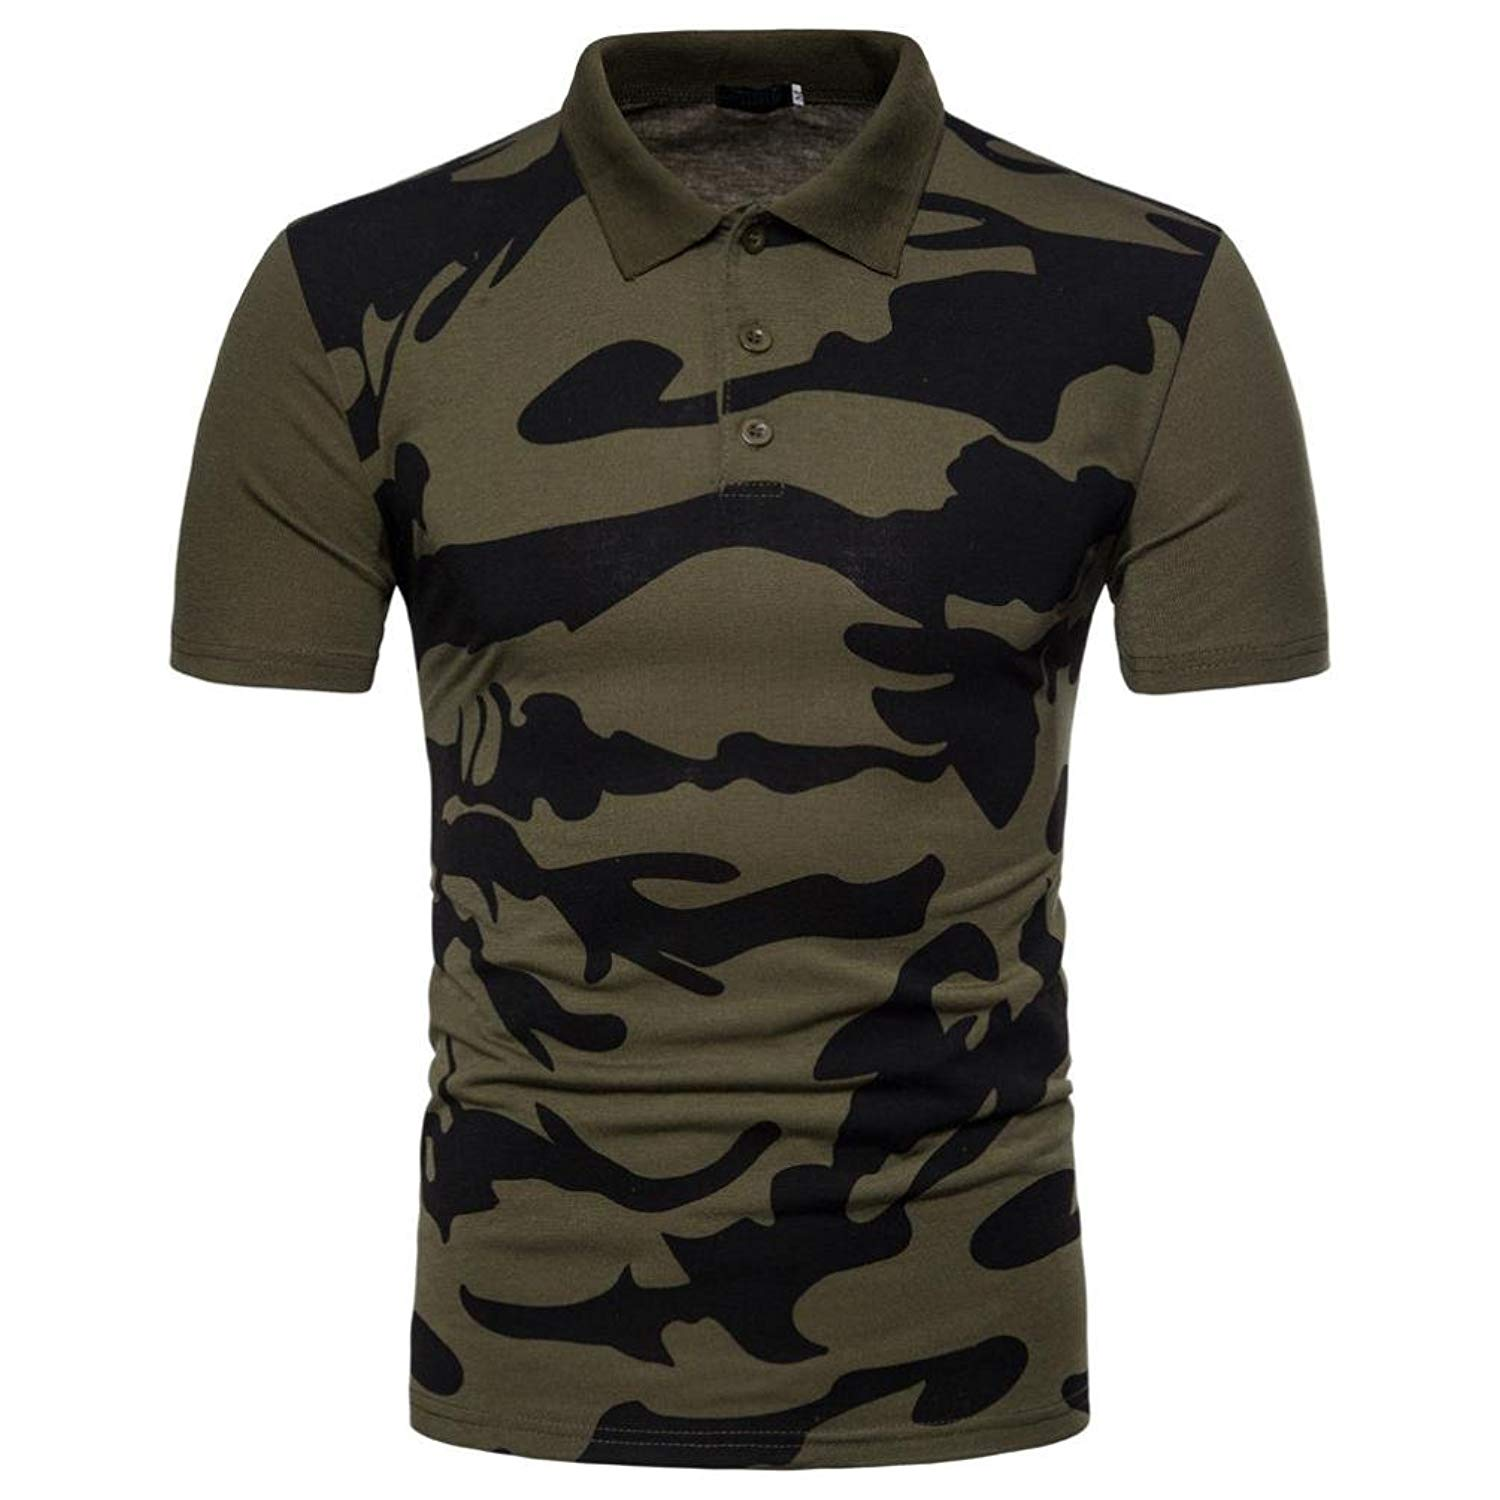 c69157e2 Get Quotations · BSGSH Men's Camouflage Athletic T-Shirts, Short Sleeve  Golf Polo Tees Shirts Pullover